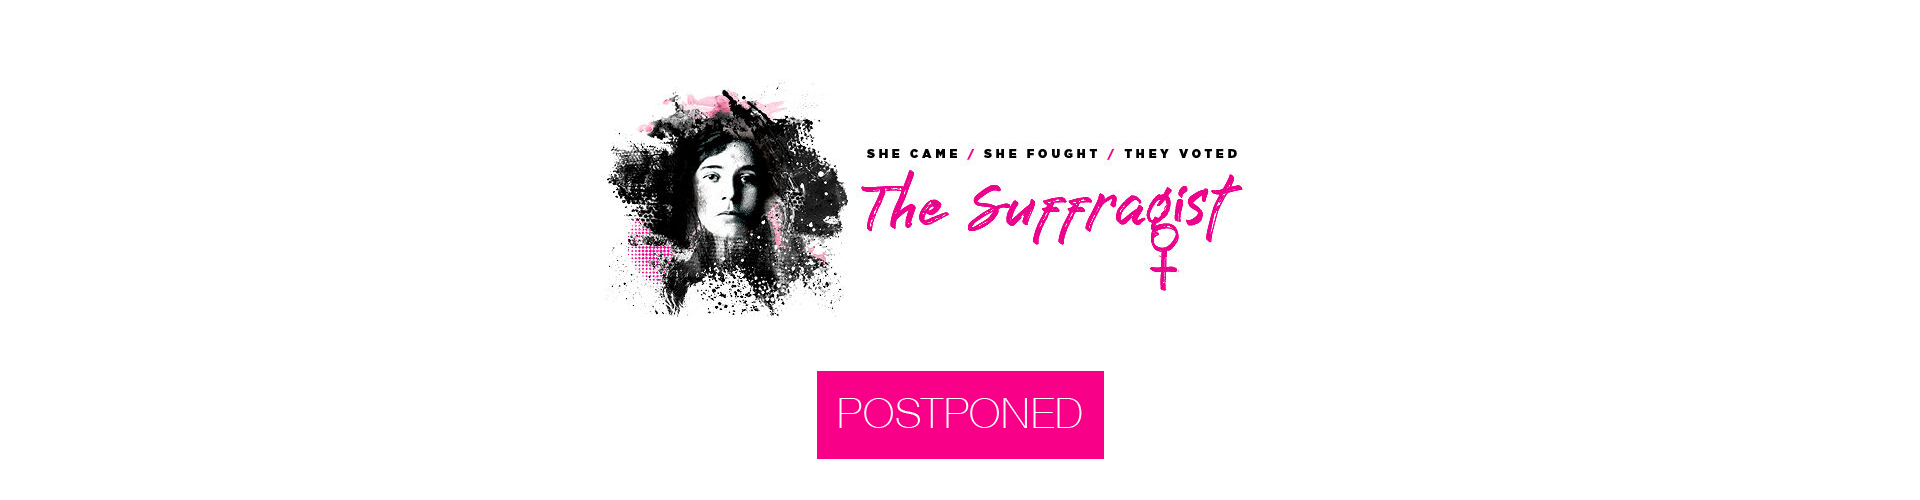 The Suffragist, Postponed